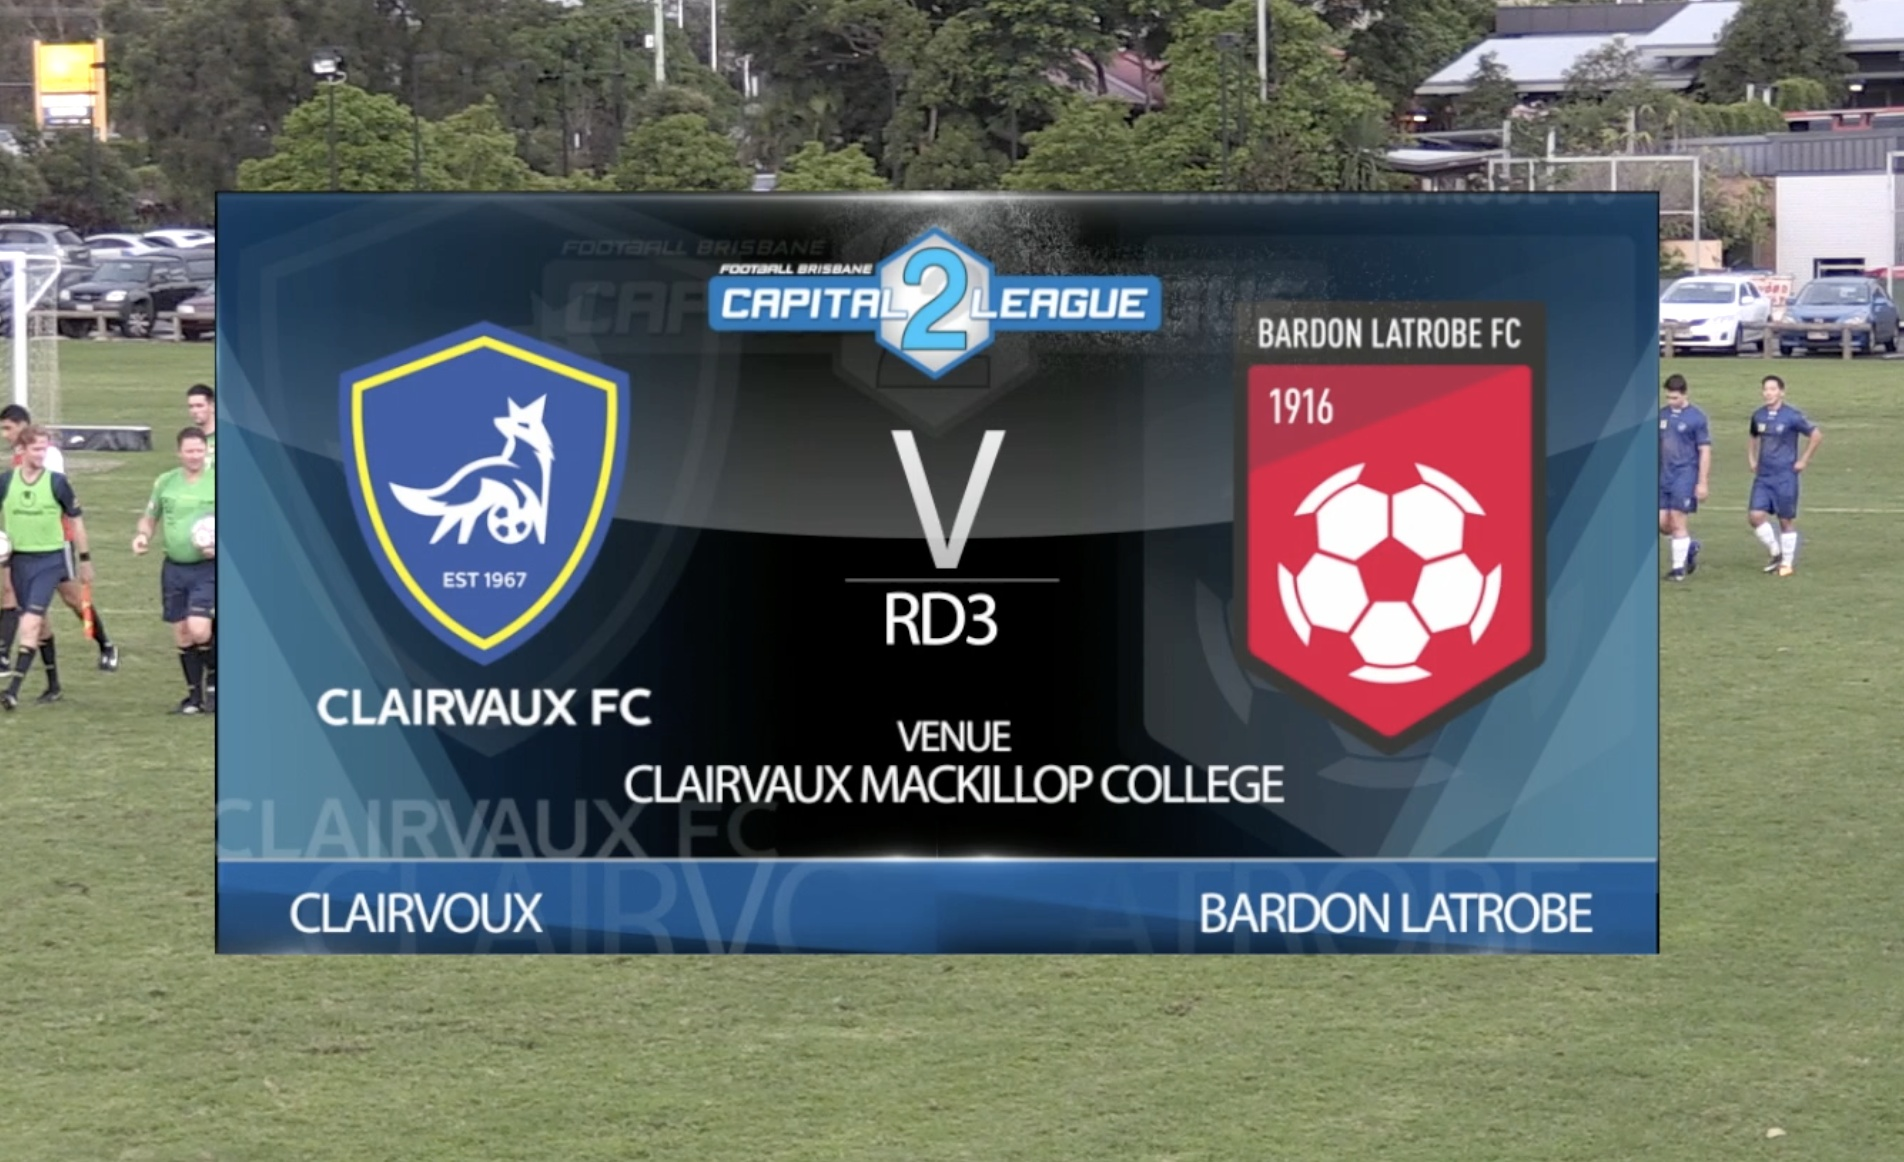 Viva Capital League 2 RD3 Clairvaux FC v Bardon Latrobe